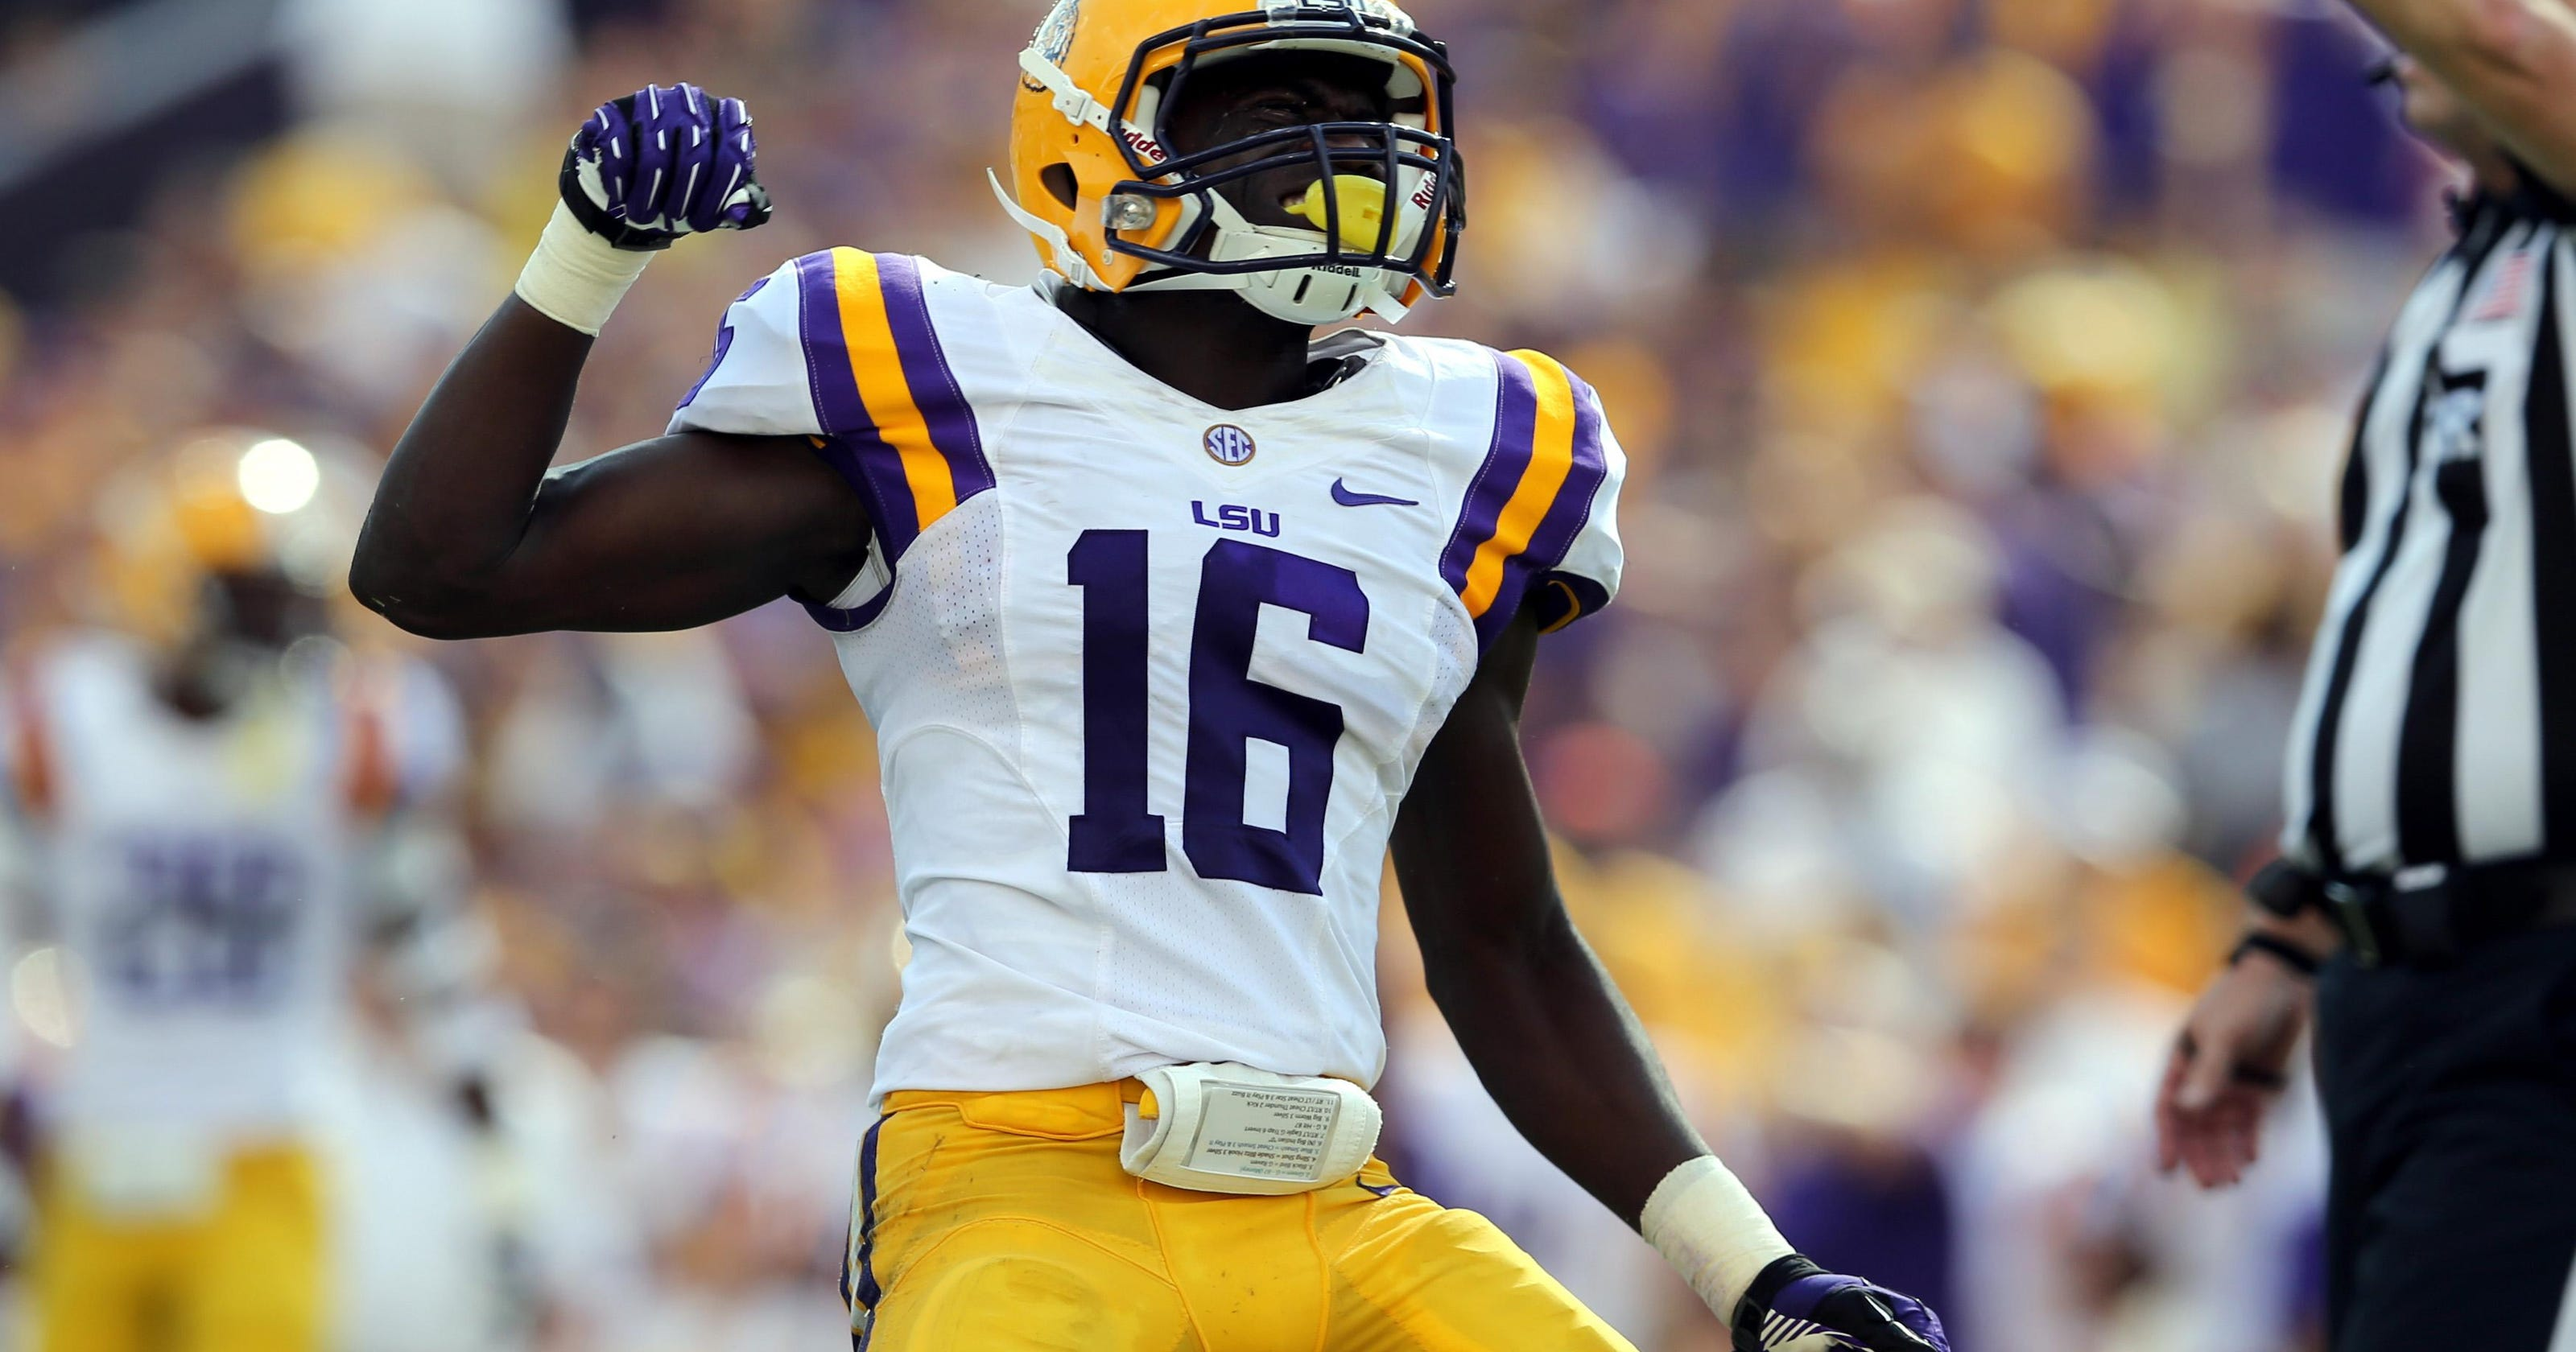 LSU s Tre Davious White to wear No. 18 ac838a16b